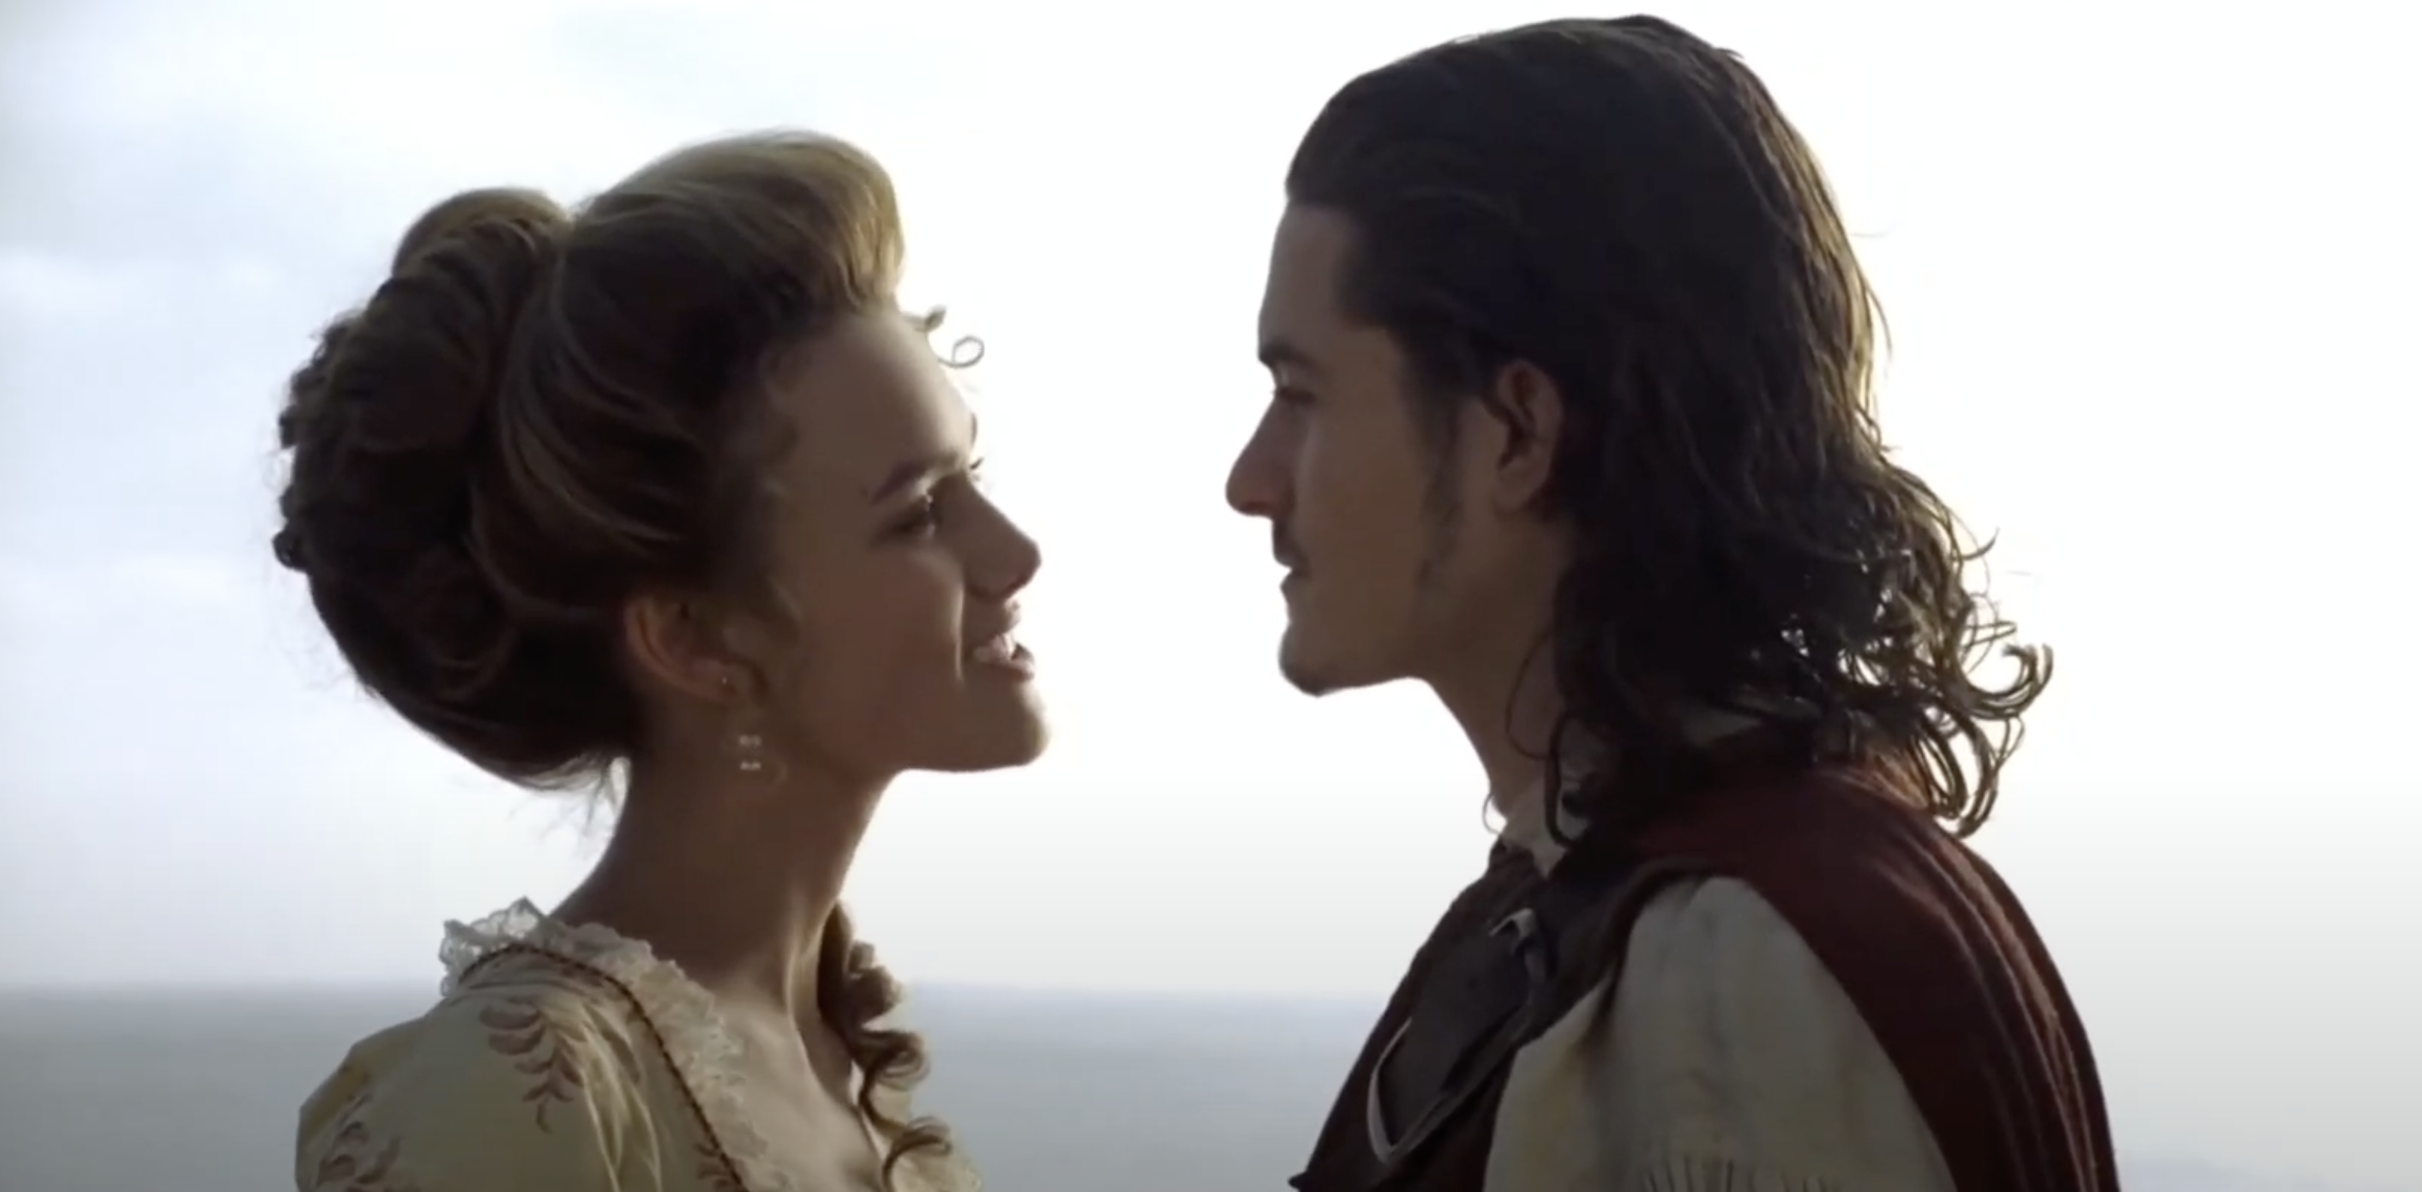 """Keira Knightly and Orlando Bloom looking at each other in """"Pirates of the Caribbean"""""""